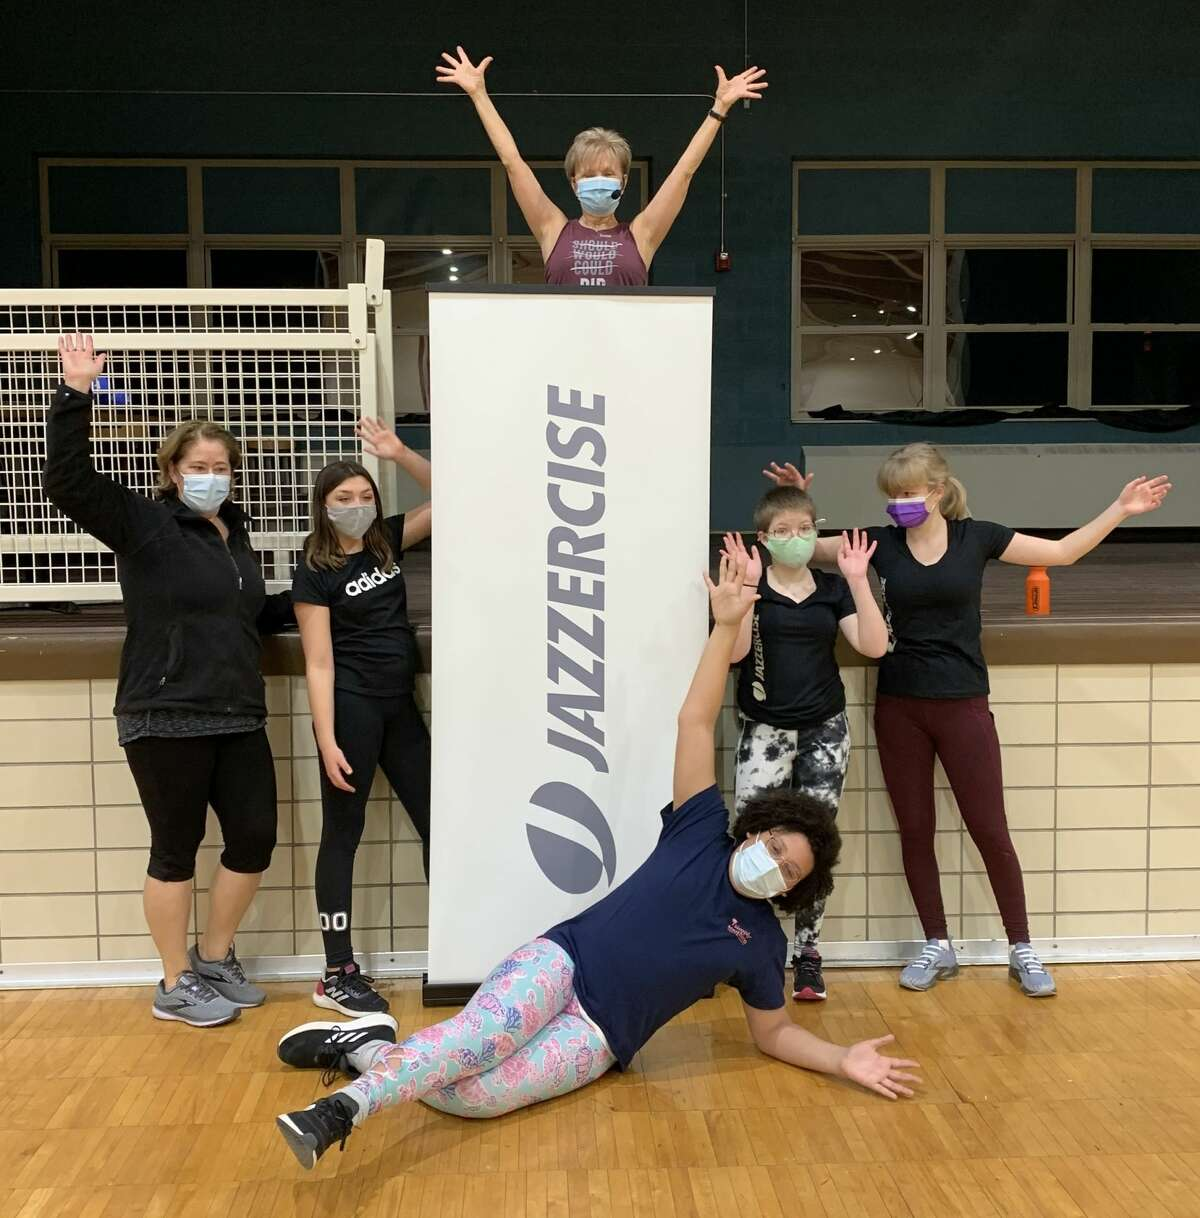 Jazzercise instructor Linda DeVries (back row) poses for a photo with students at the Armory Youth Project in Manistee. DeVries has been teaching Jazzercise for 35 years.